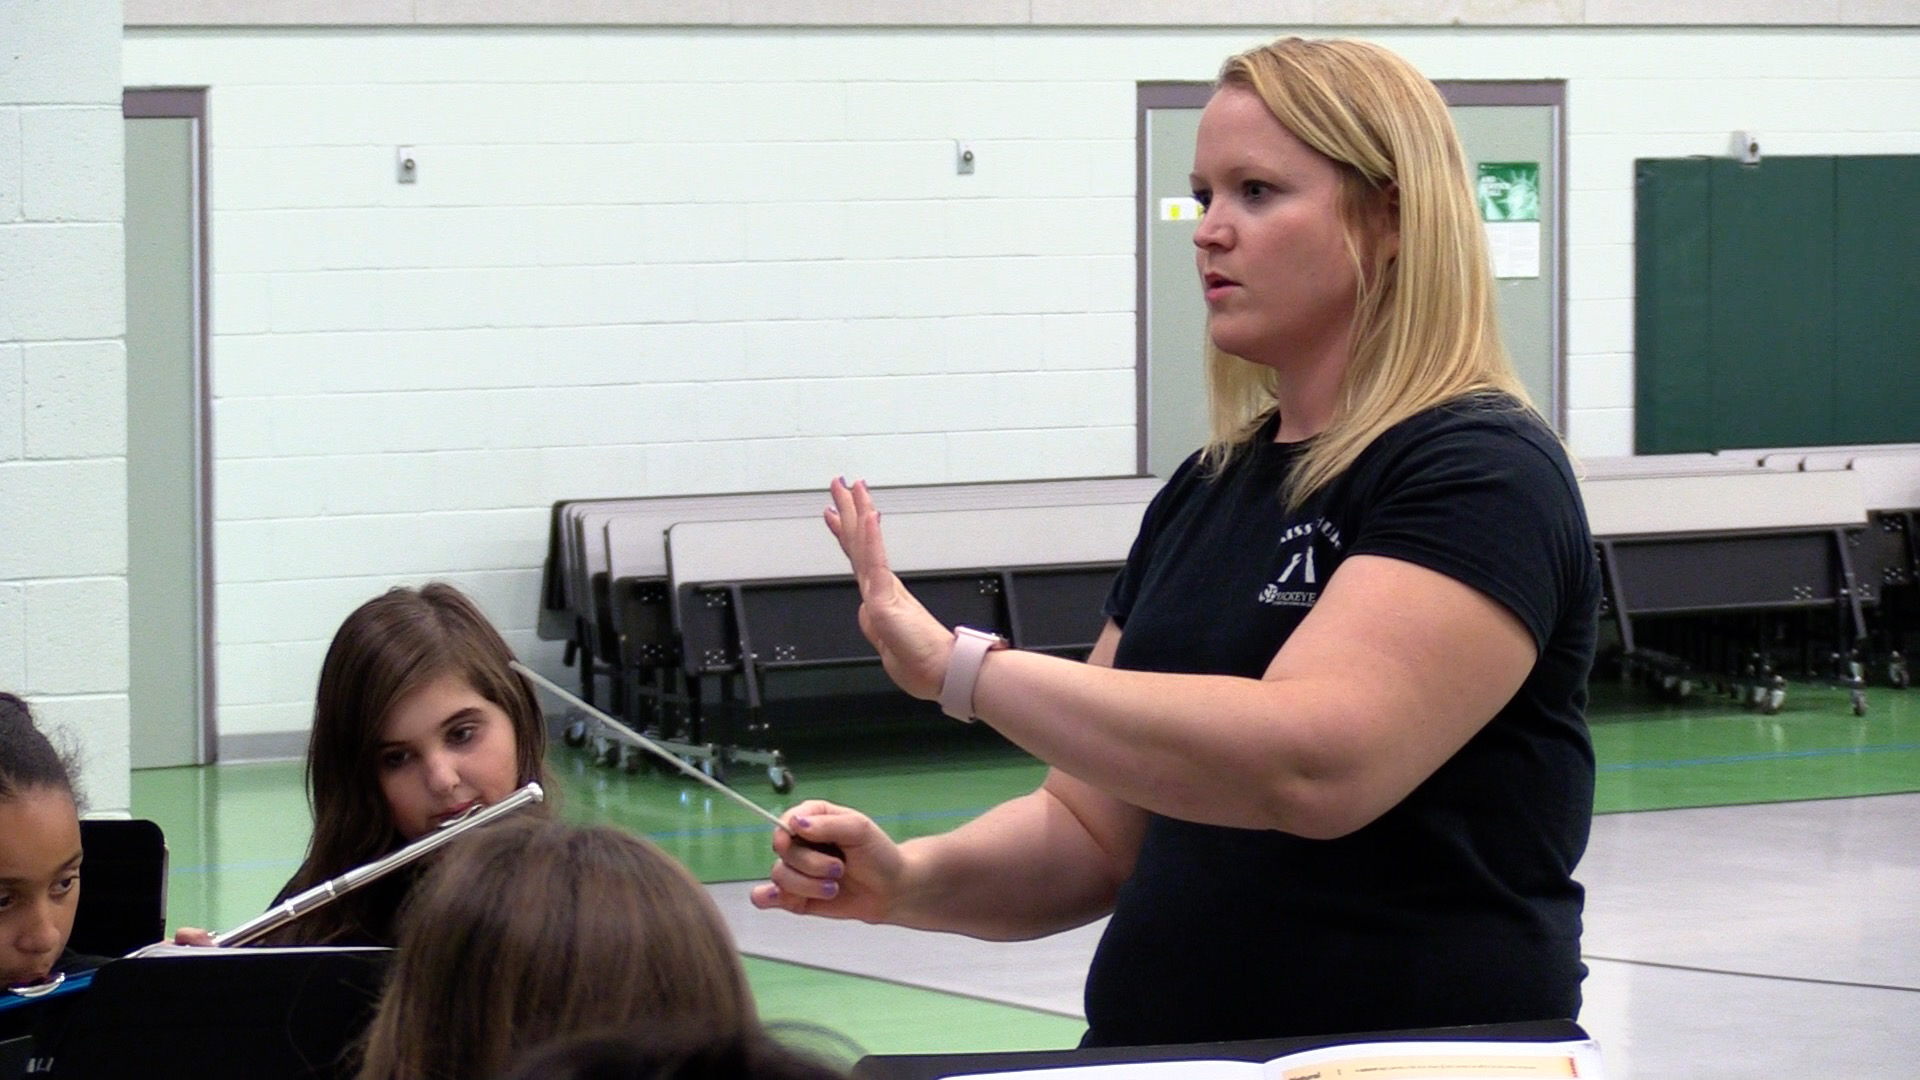 Buckeye Elementary School District Band Director Amber Shupe Works With Students During Band Camp. Photo Courtesy Buckeye Elementary School District